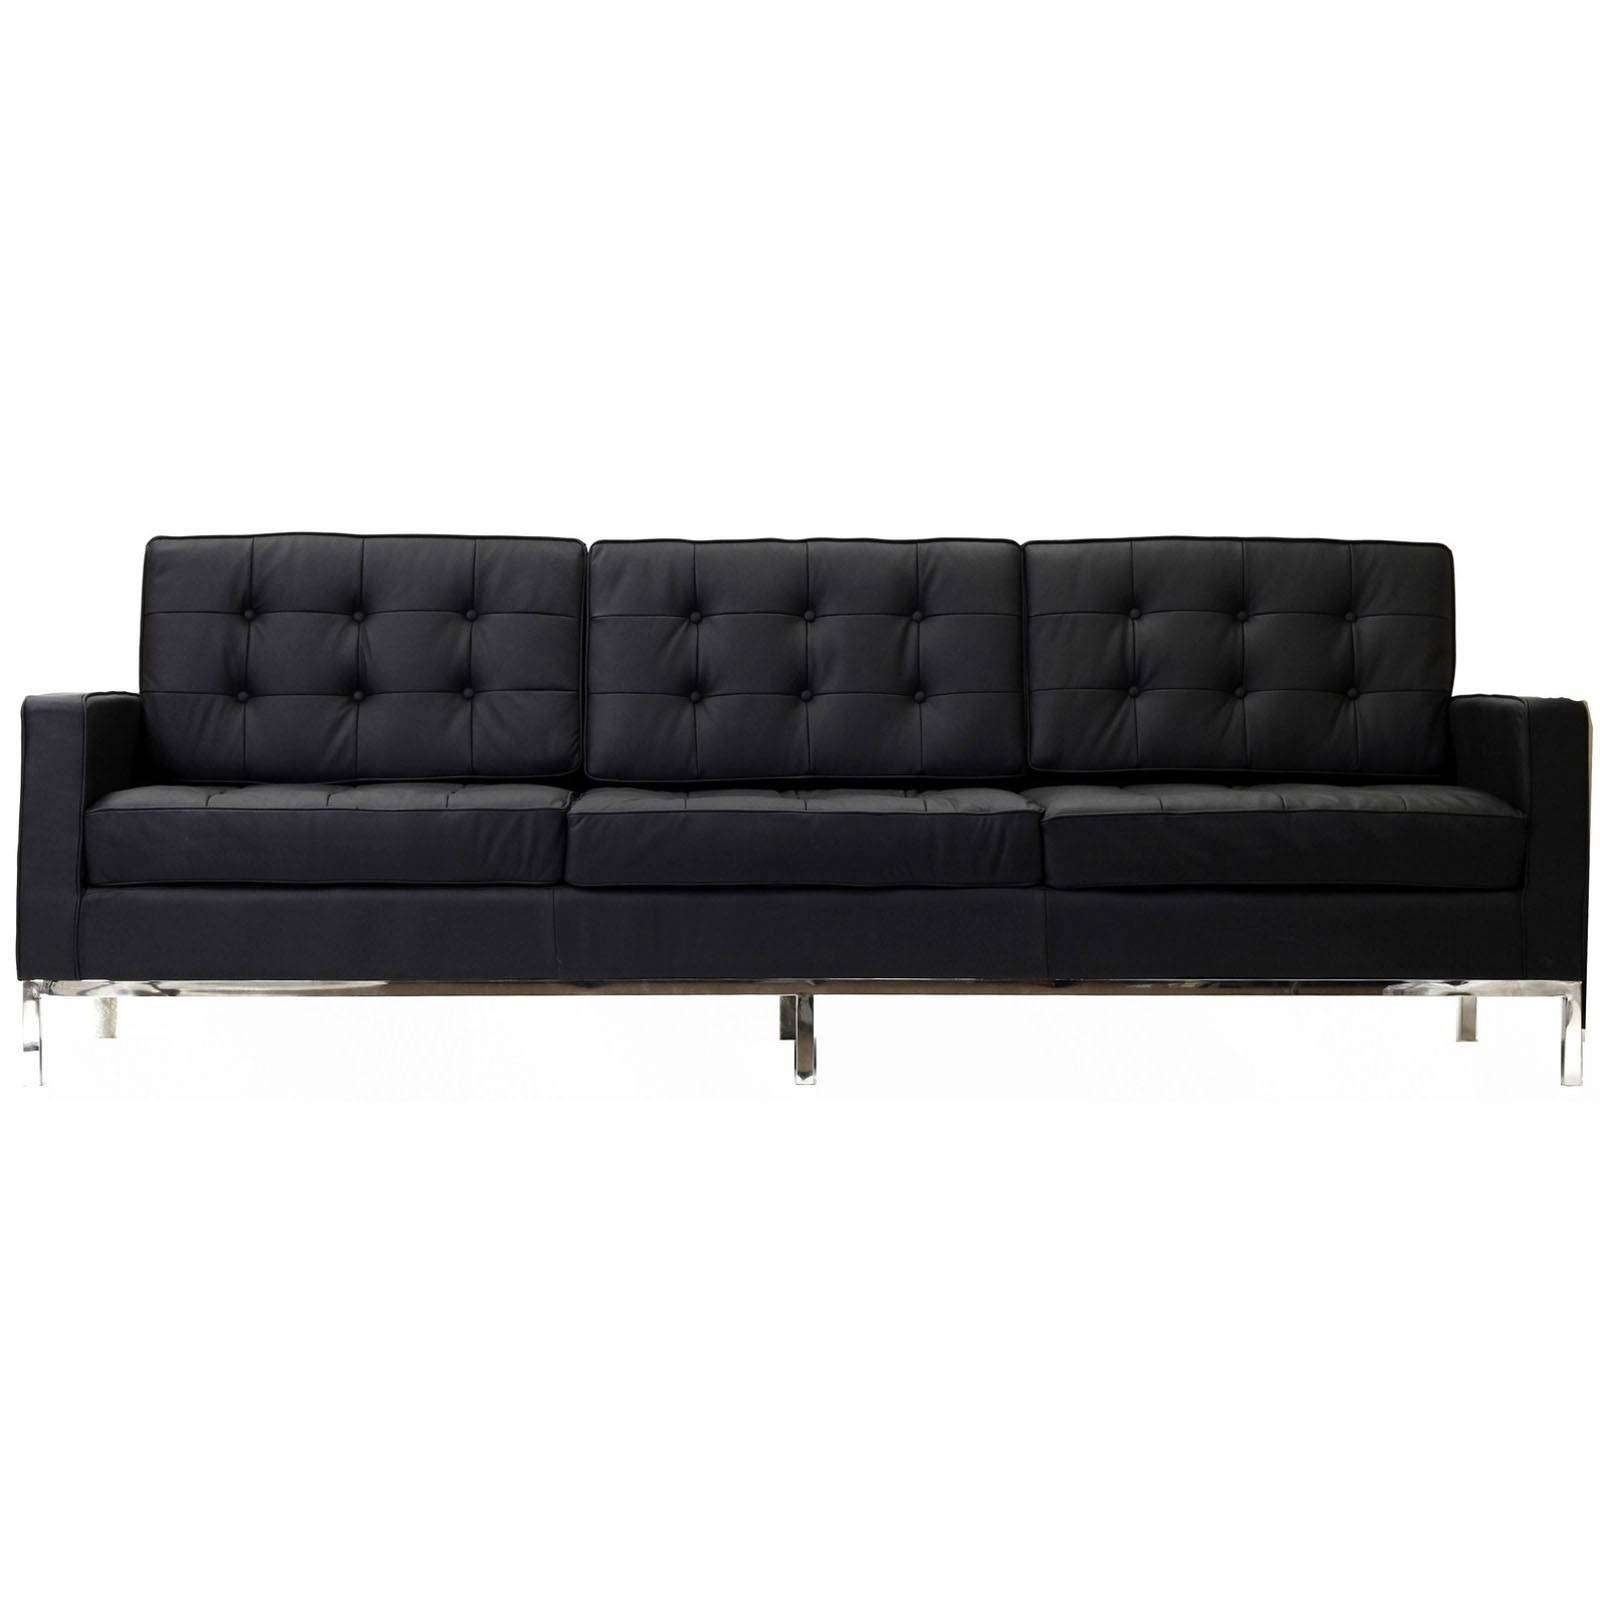 Knoll Couch Florence Knoll Style Sofa Couch Leather